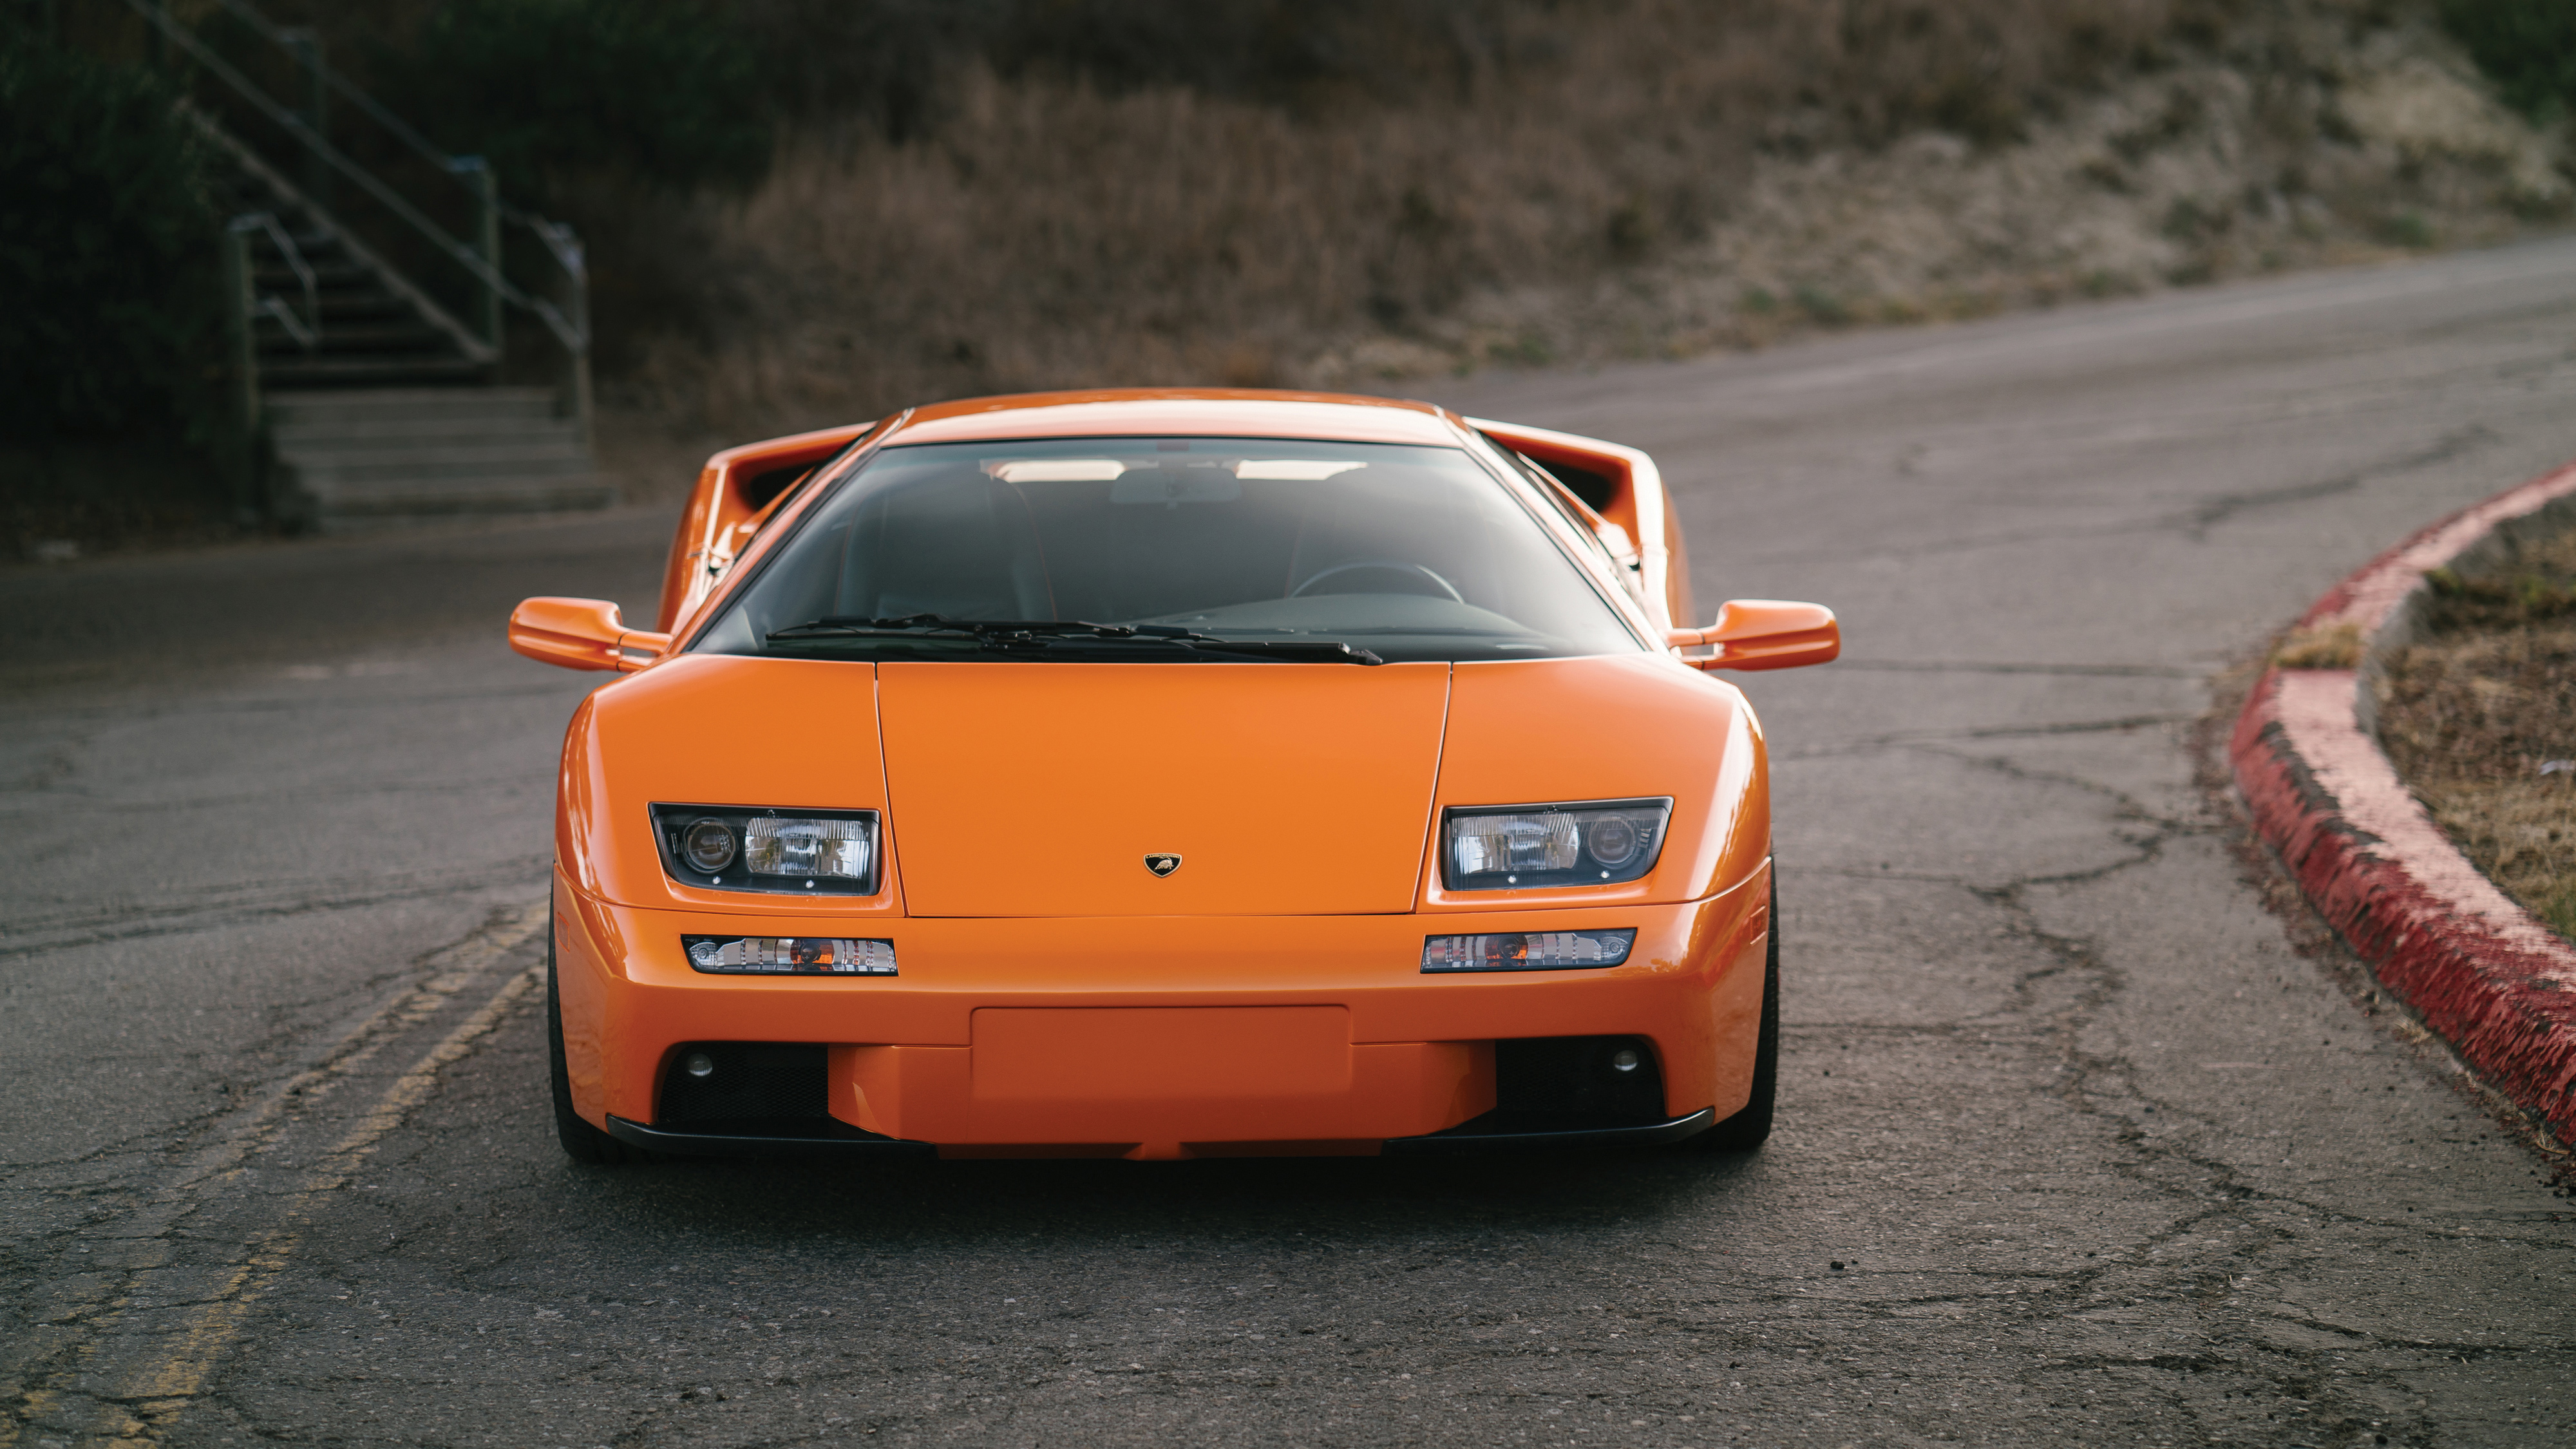 Lamborghini Diablo Vt 6 4k Wallpaper Hd Car Wallpapers Id 9320